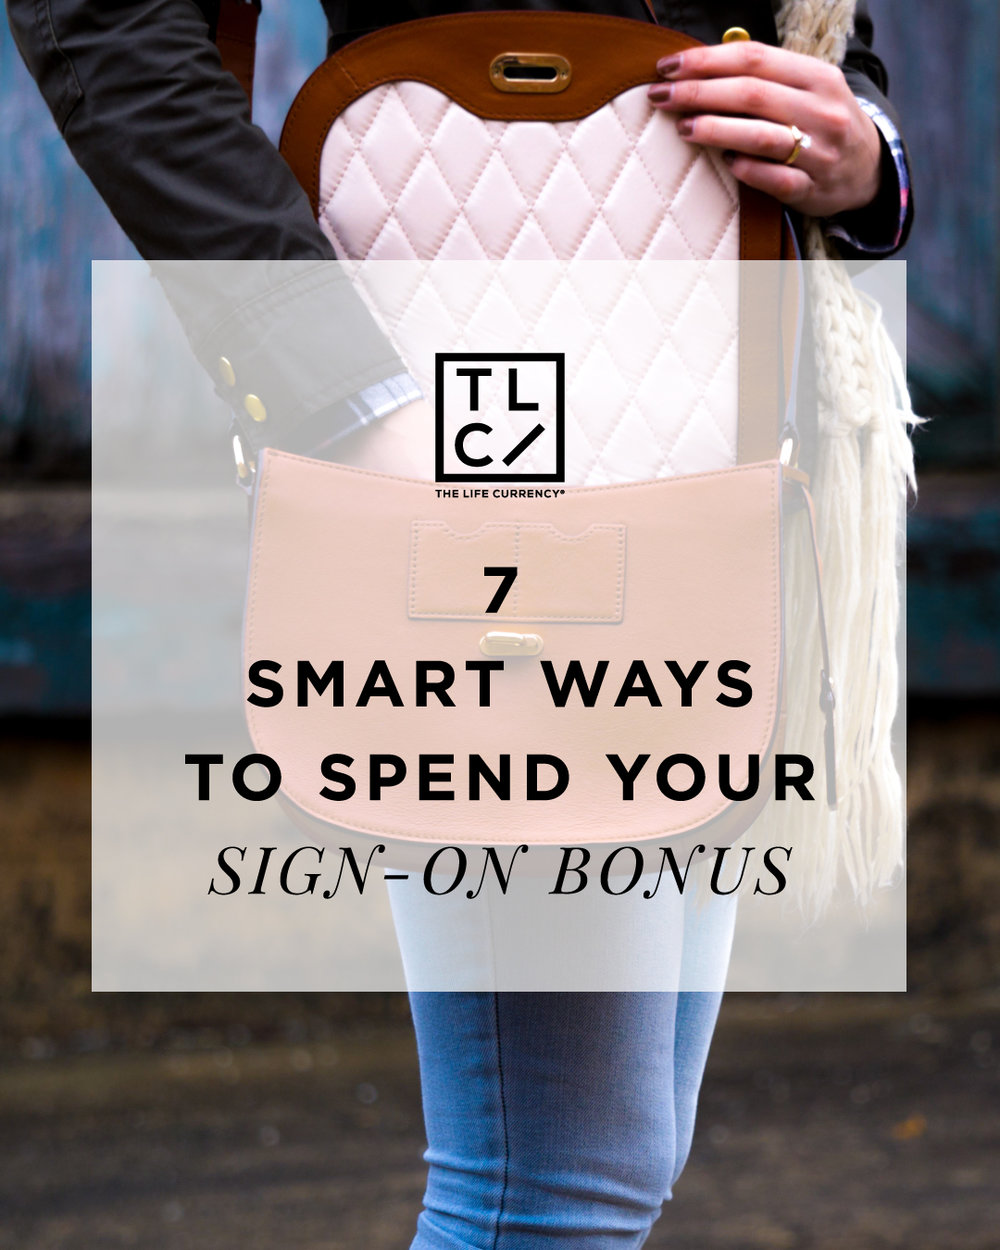 7 Smart Ways to Spend Your Sign-On Bonus